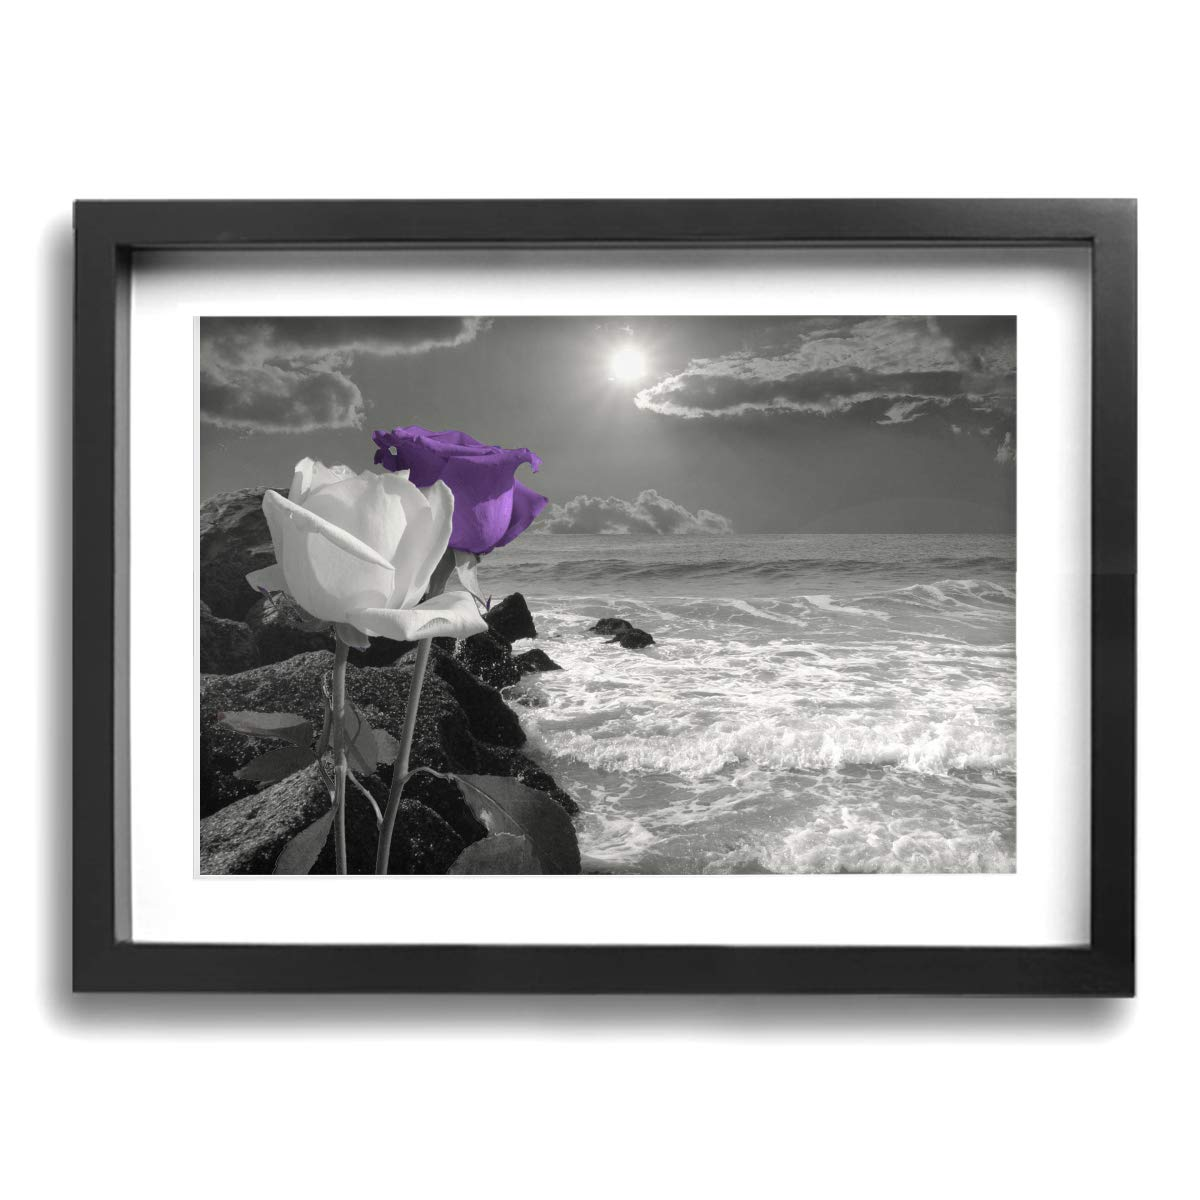 Amazon com treeww black white purple rose flower coastal ocean beach canvas wall art poster prints ready to hang 16 x 12 posters prints